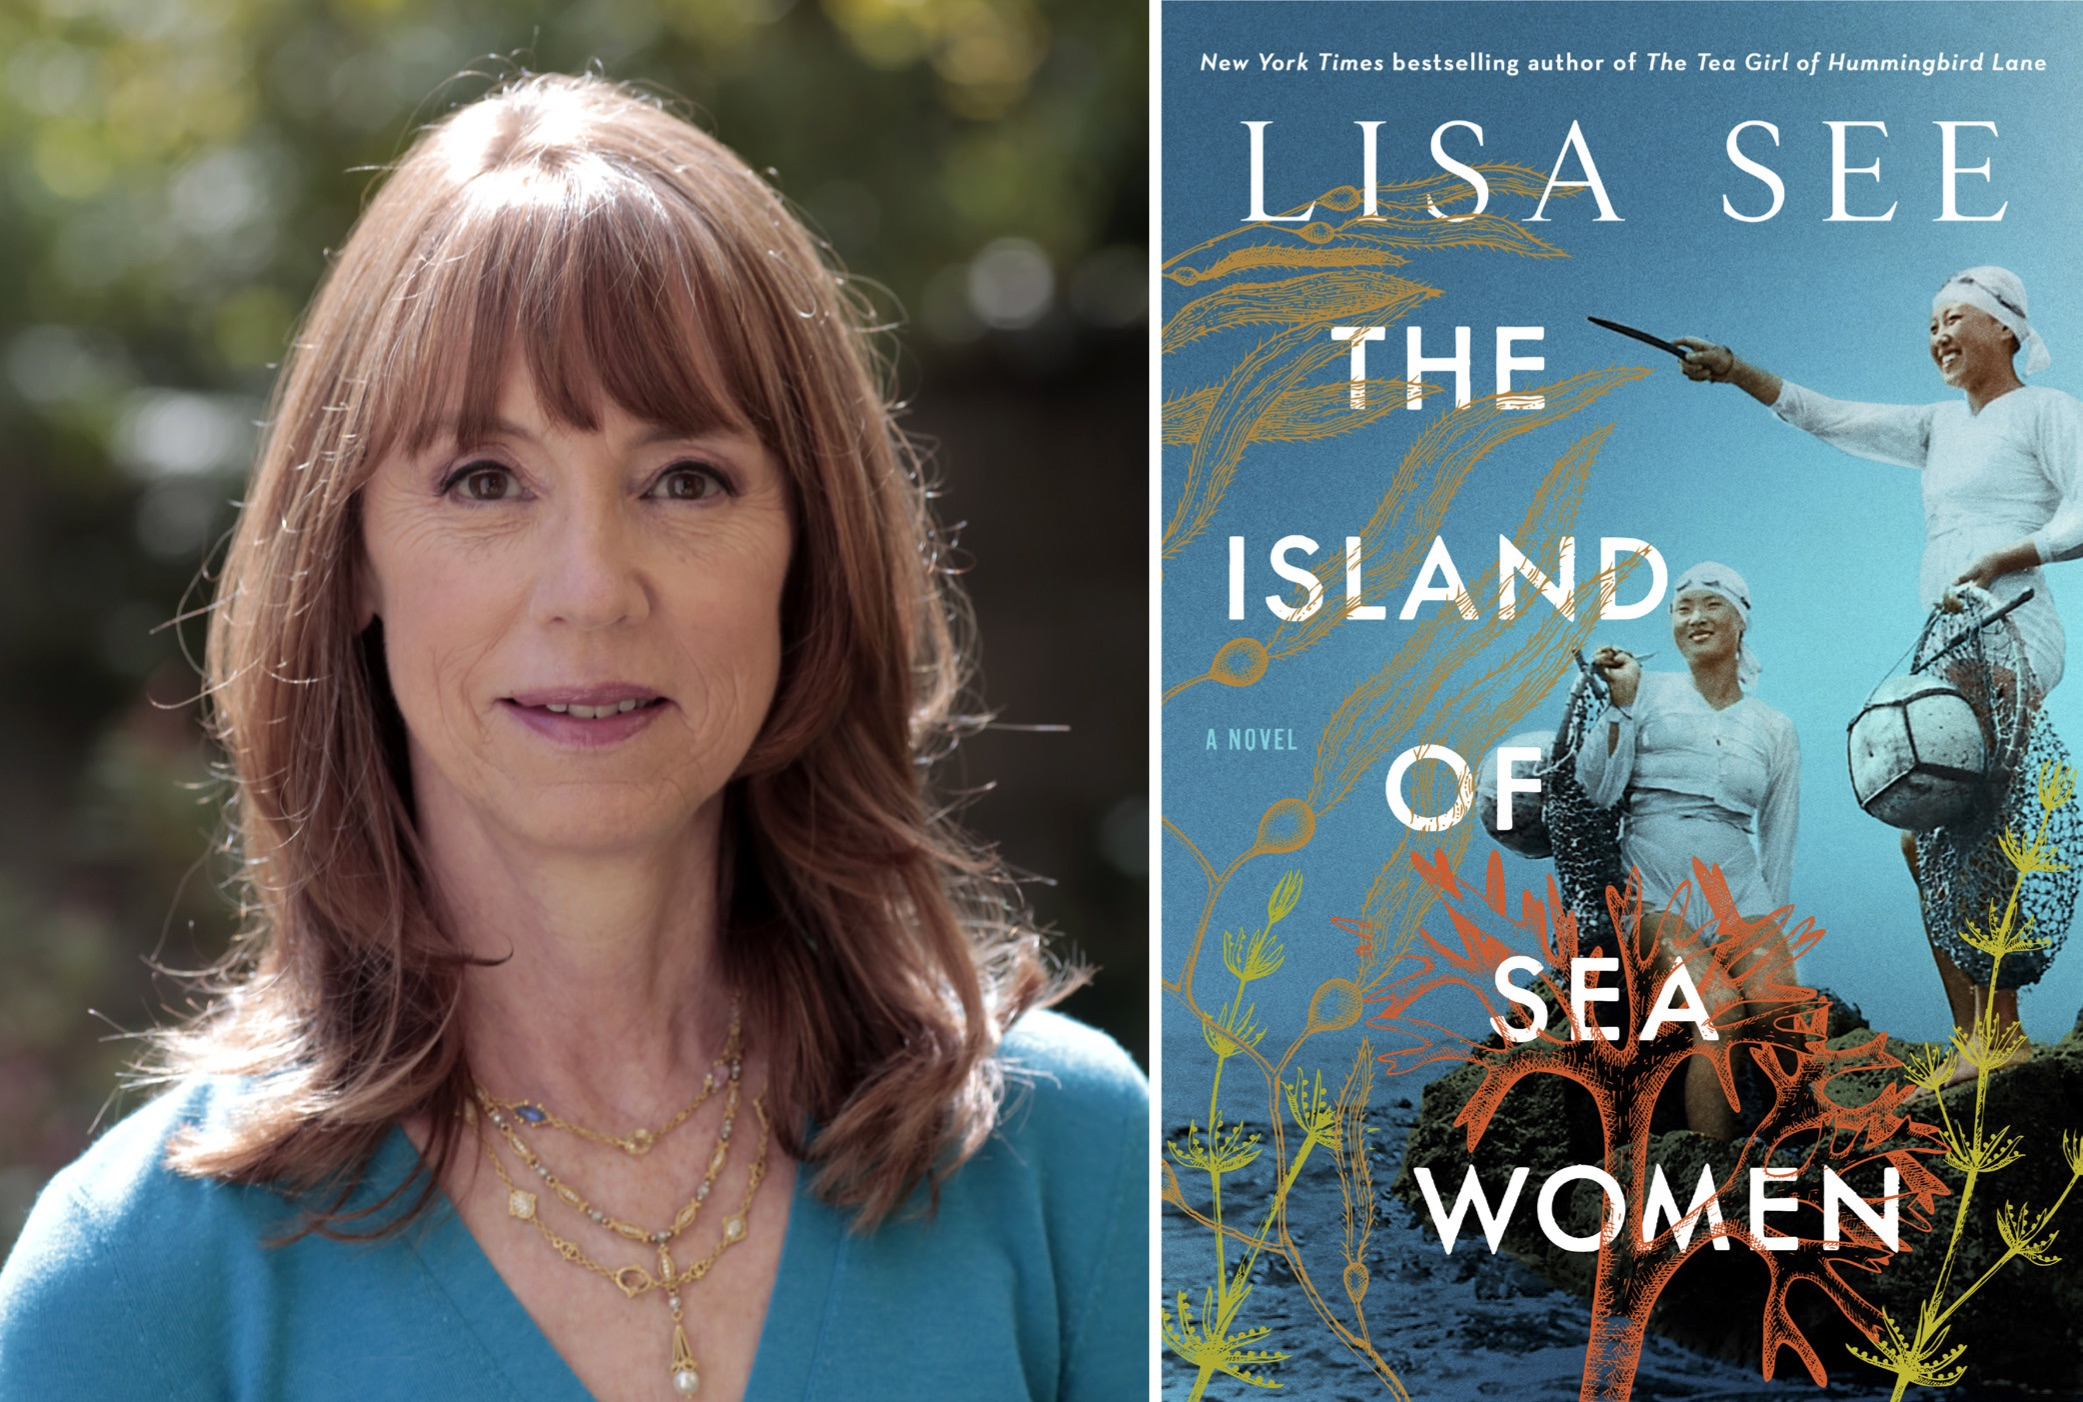 lisa see island of sea women bookshop santa cruz